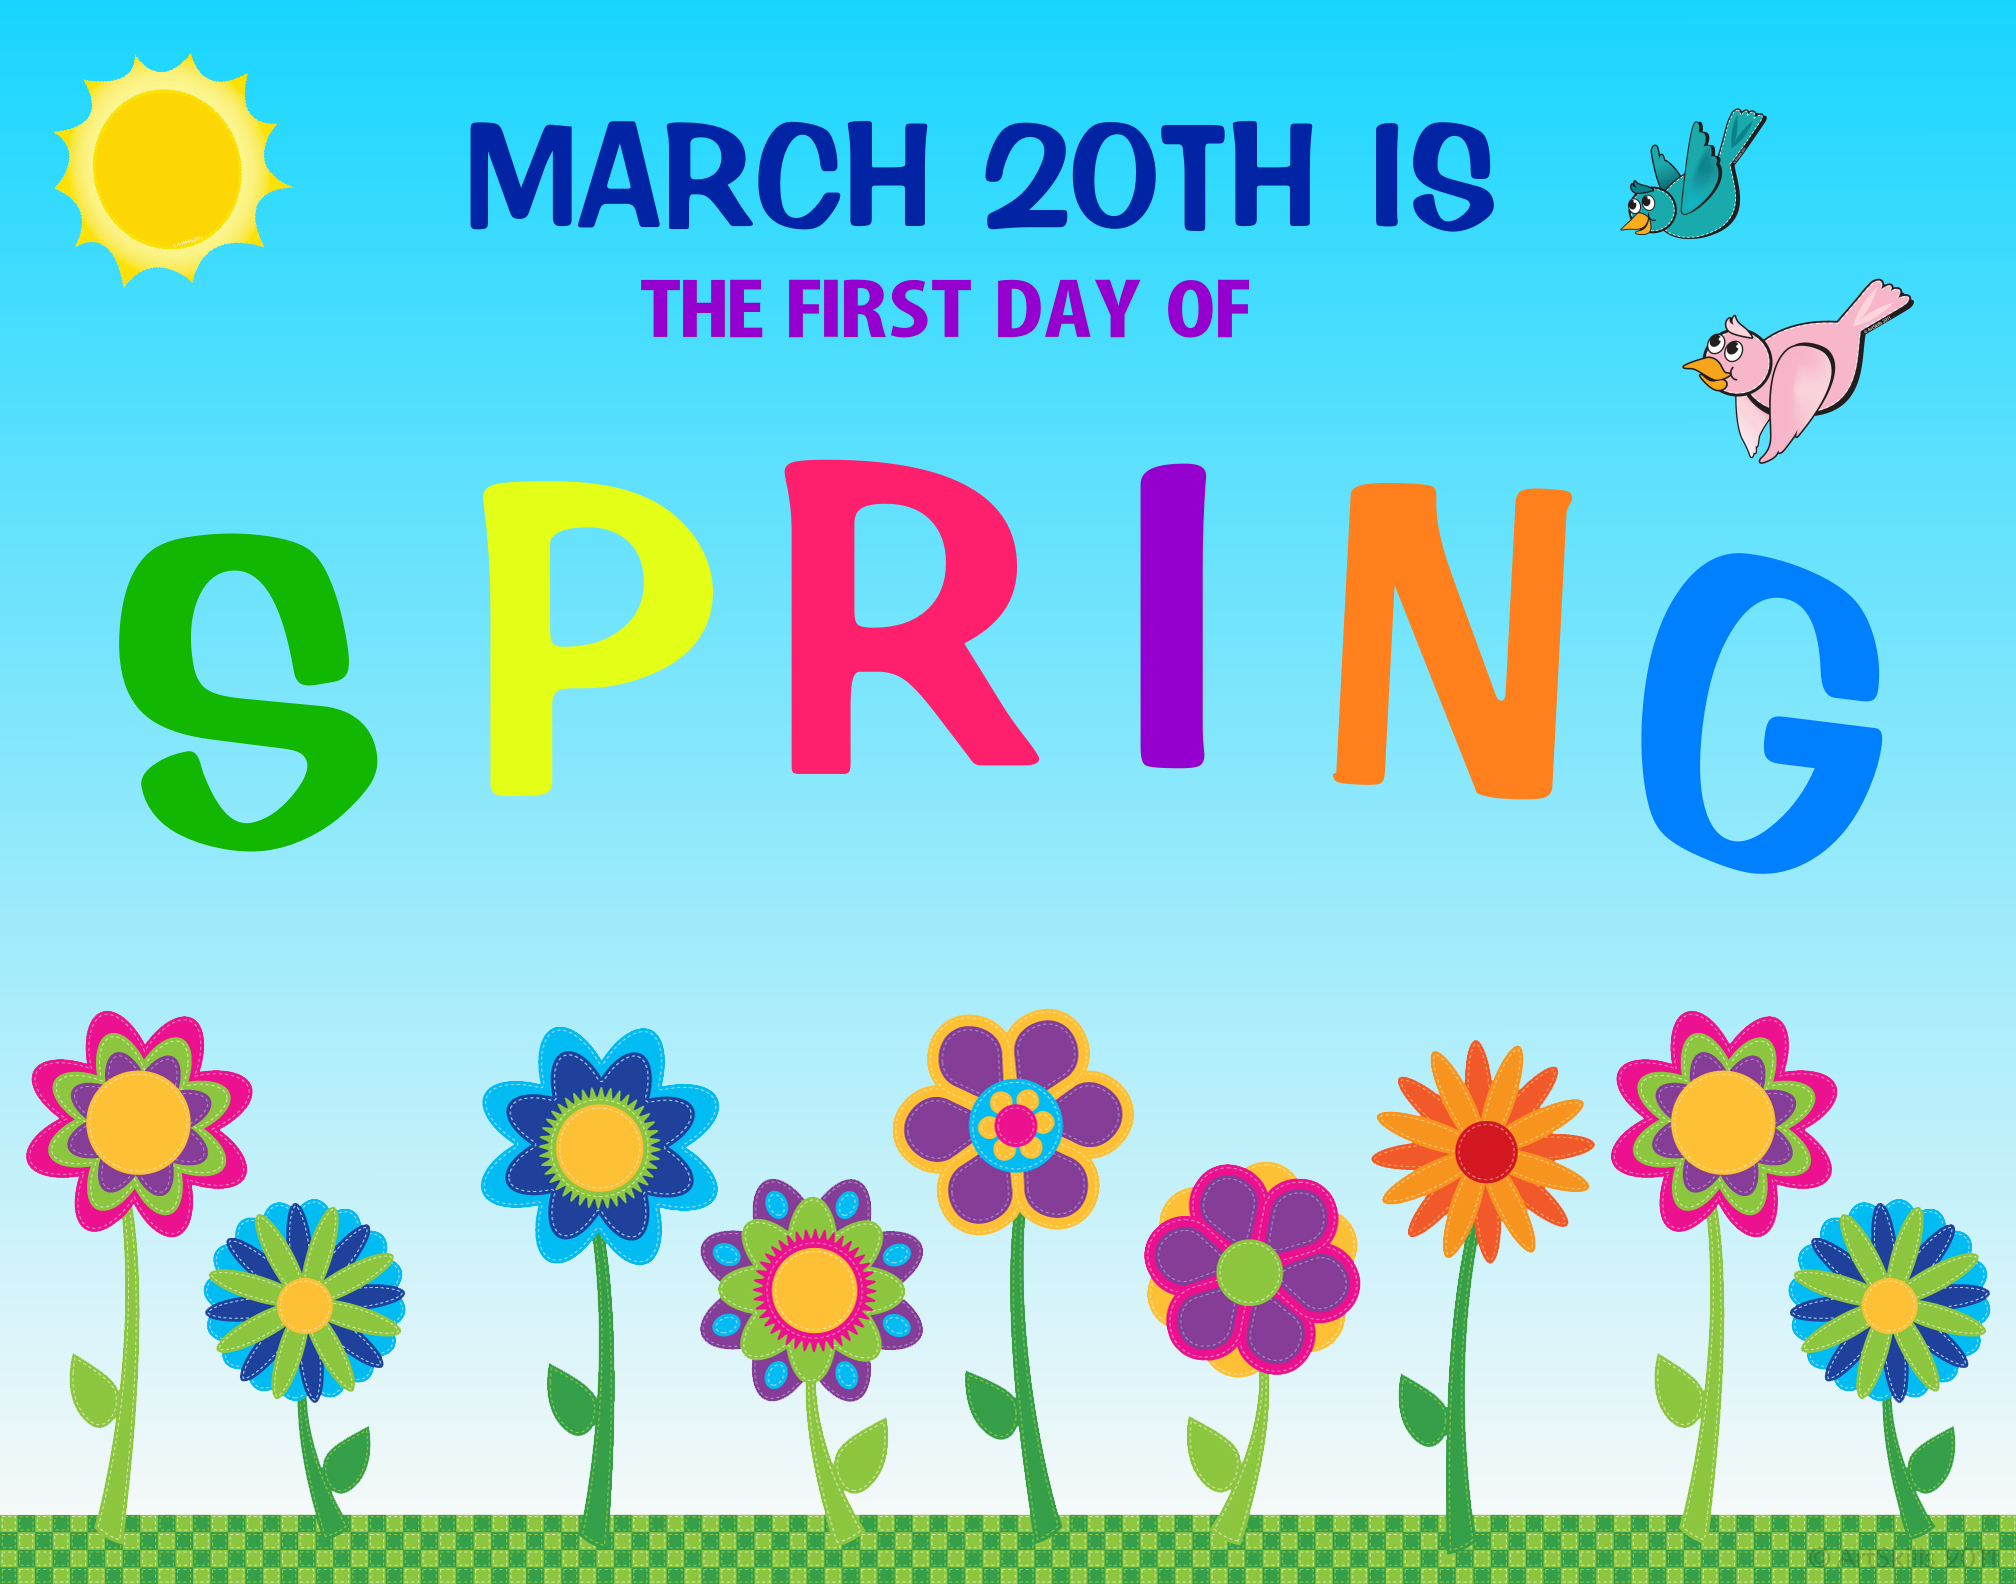 First Day Of Spring Clipart Images Pictu-First Day Of Spring Clipart Images Pictures Becuo-8